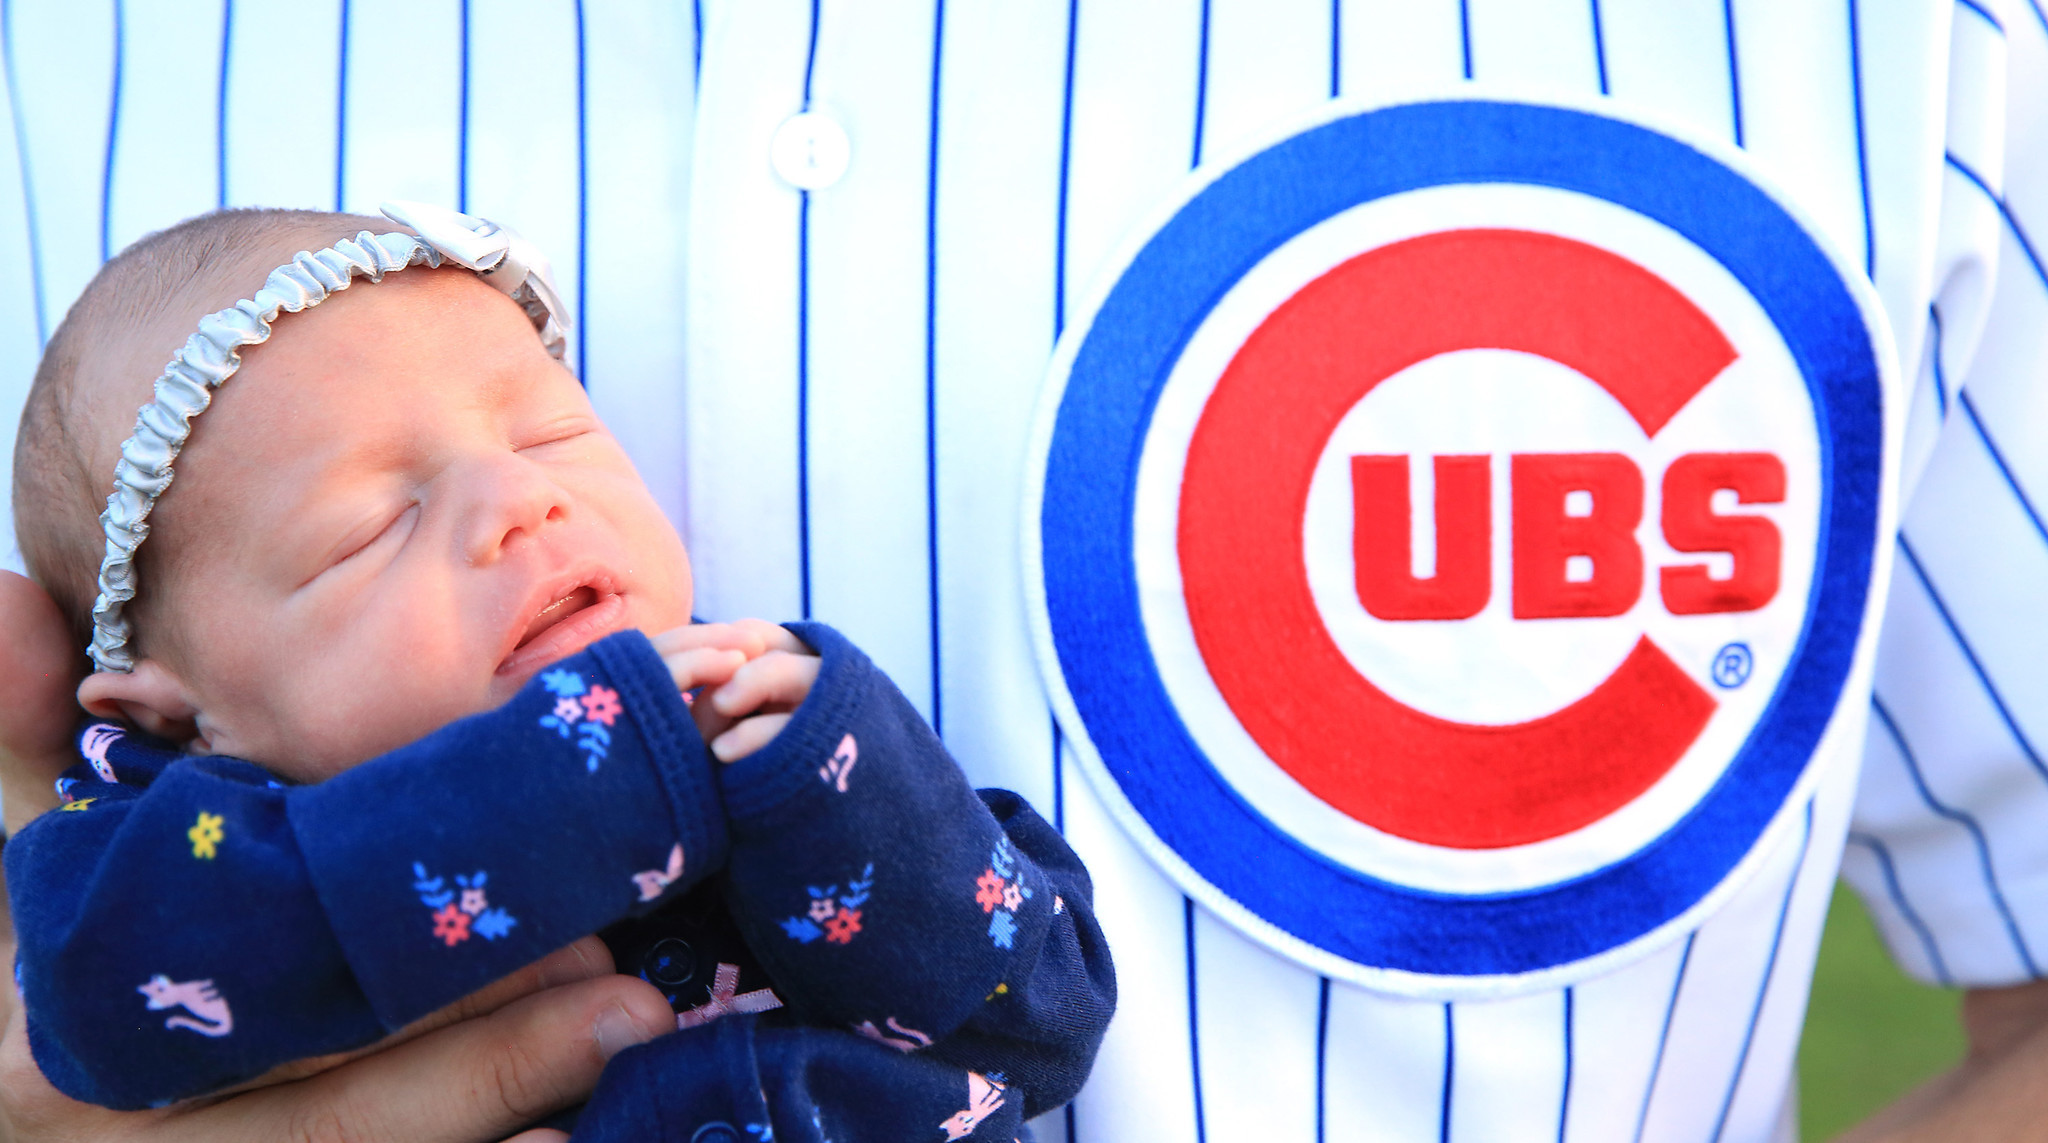 A Cubs World Series baby boom Some parents and hospitals think so